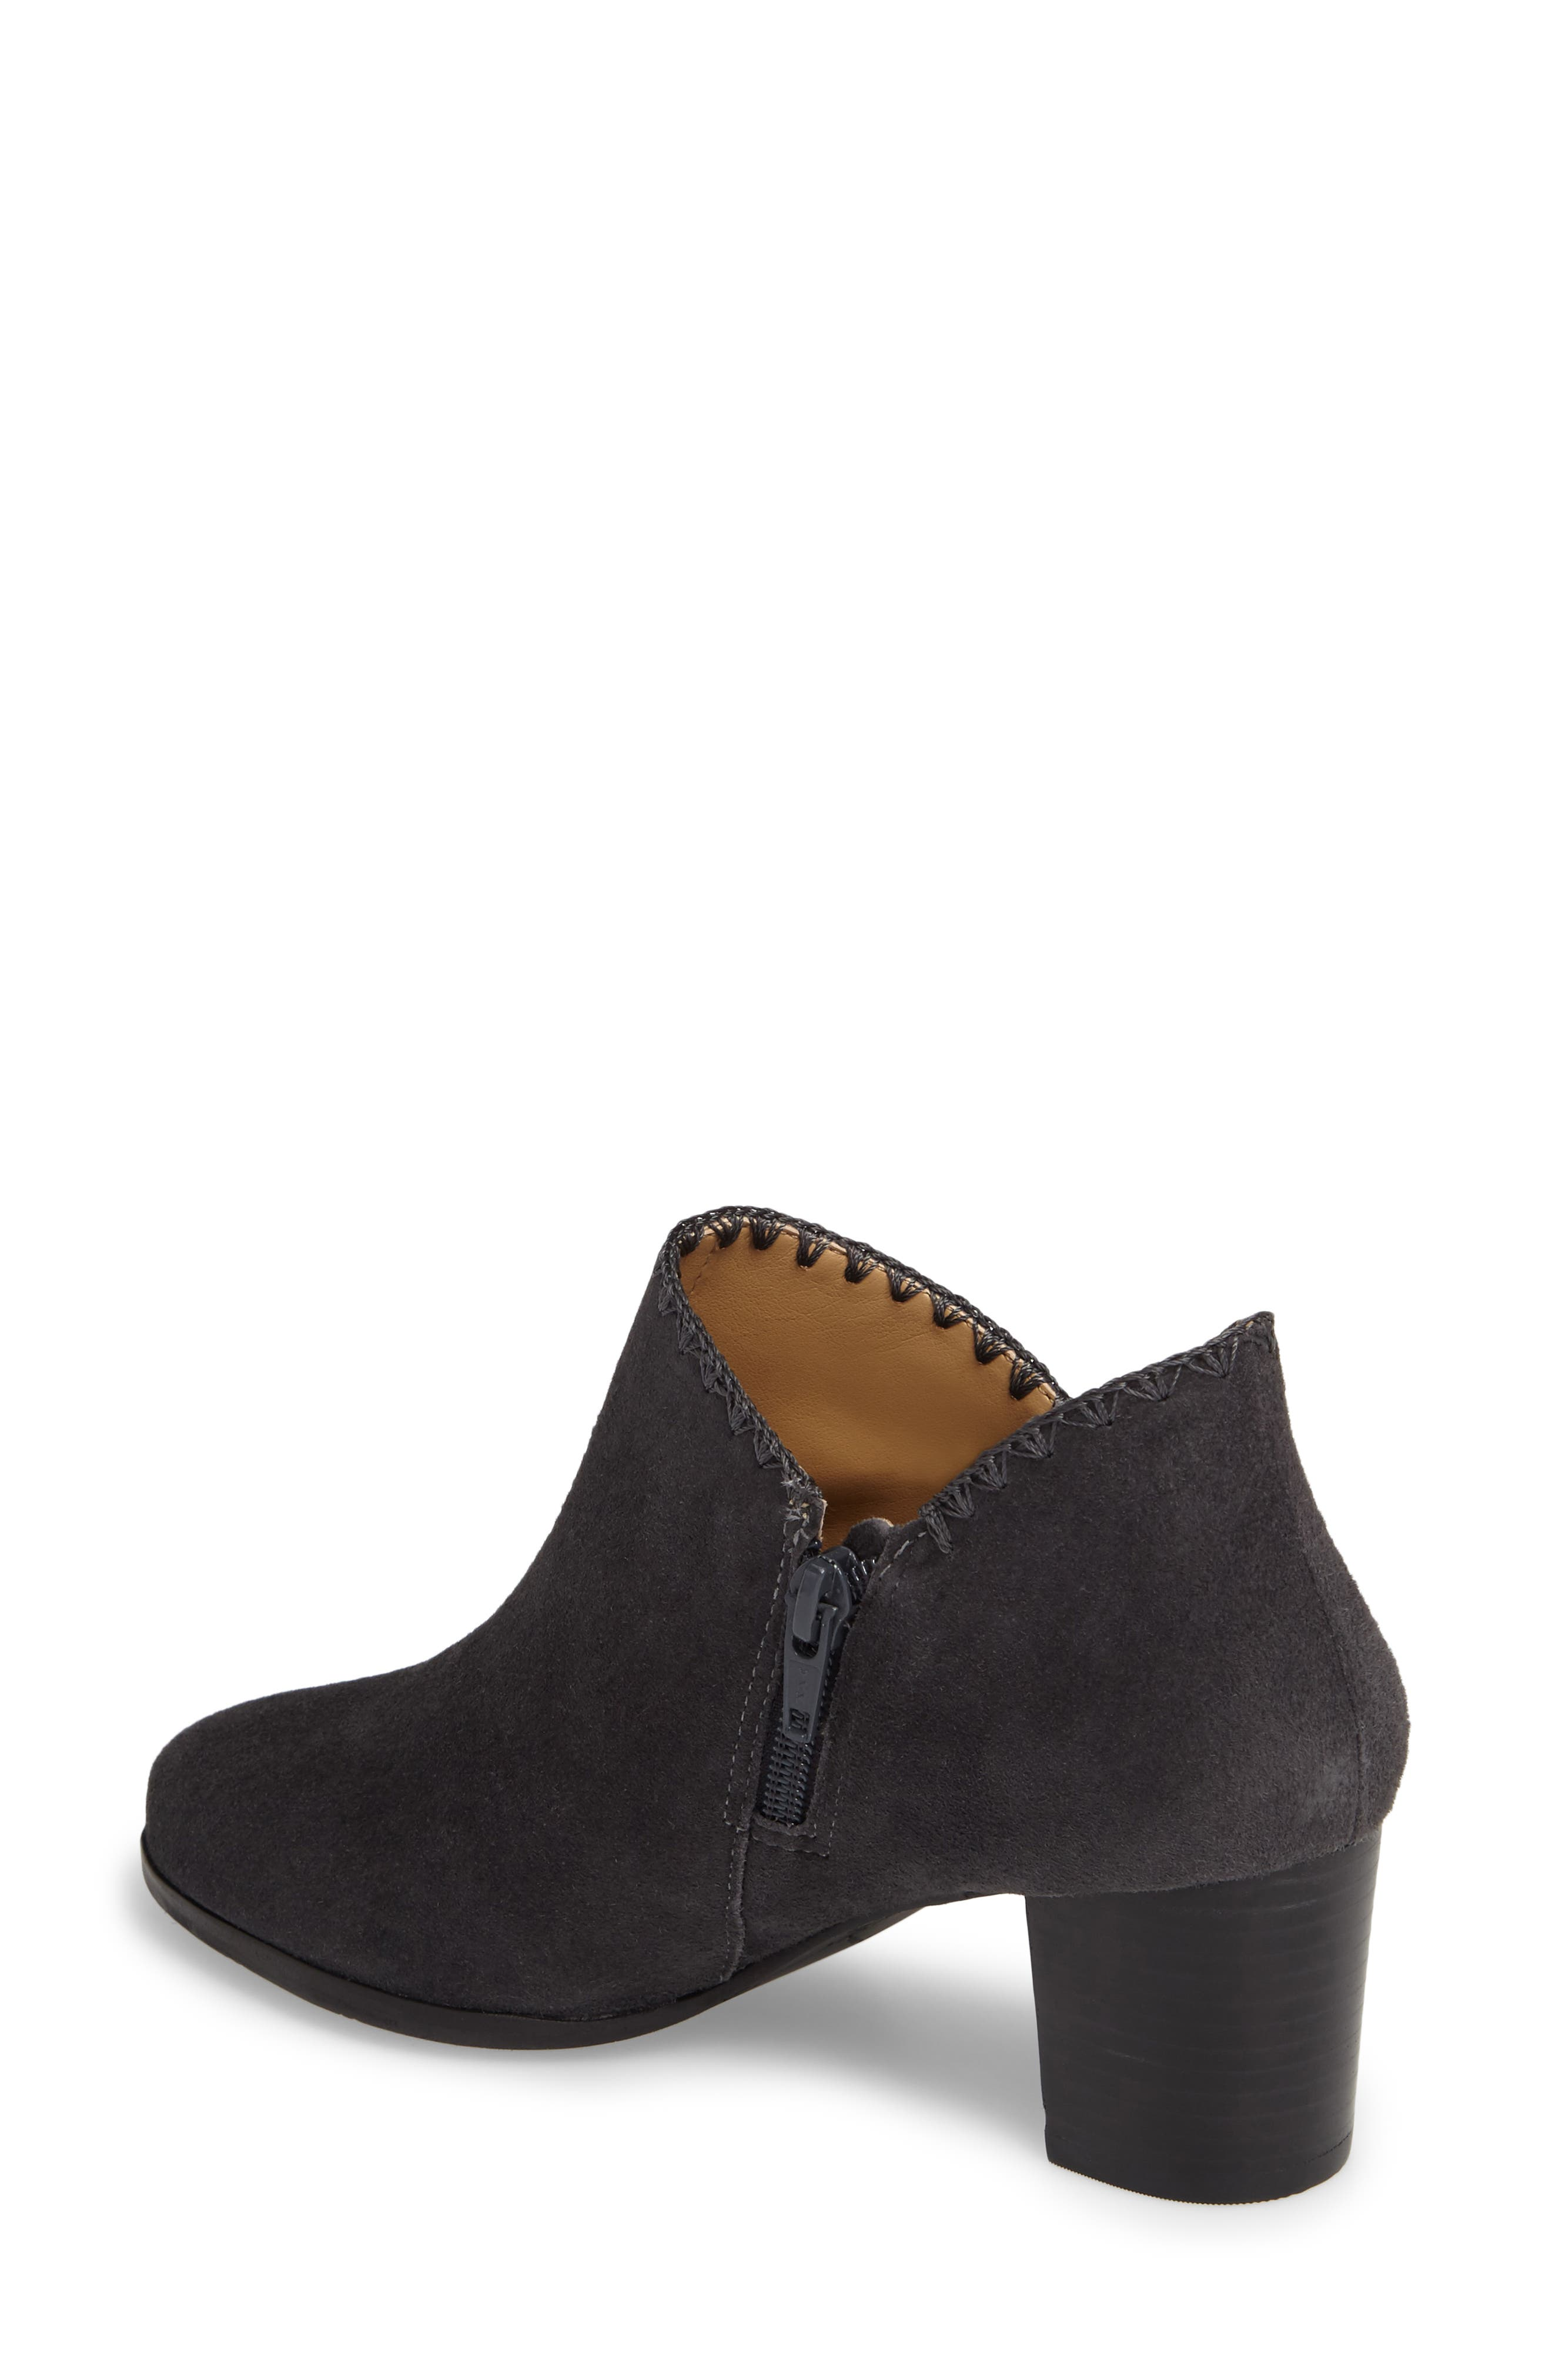 Marlow Bootie,                             Alternate thumbnail 10, color,